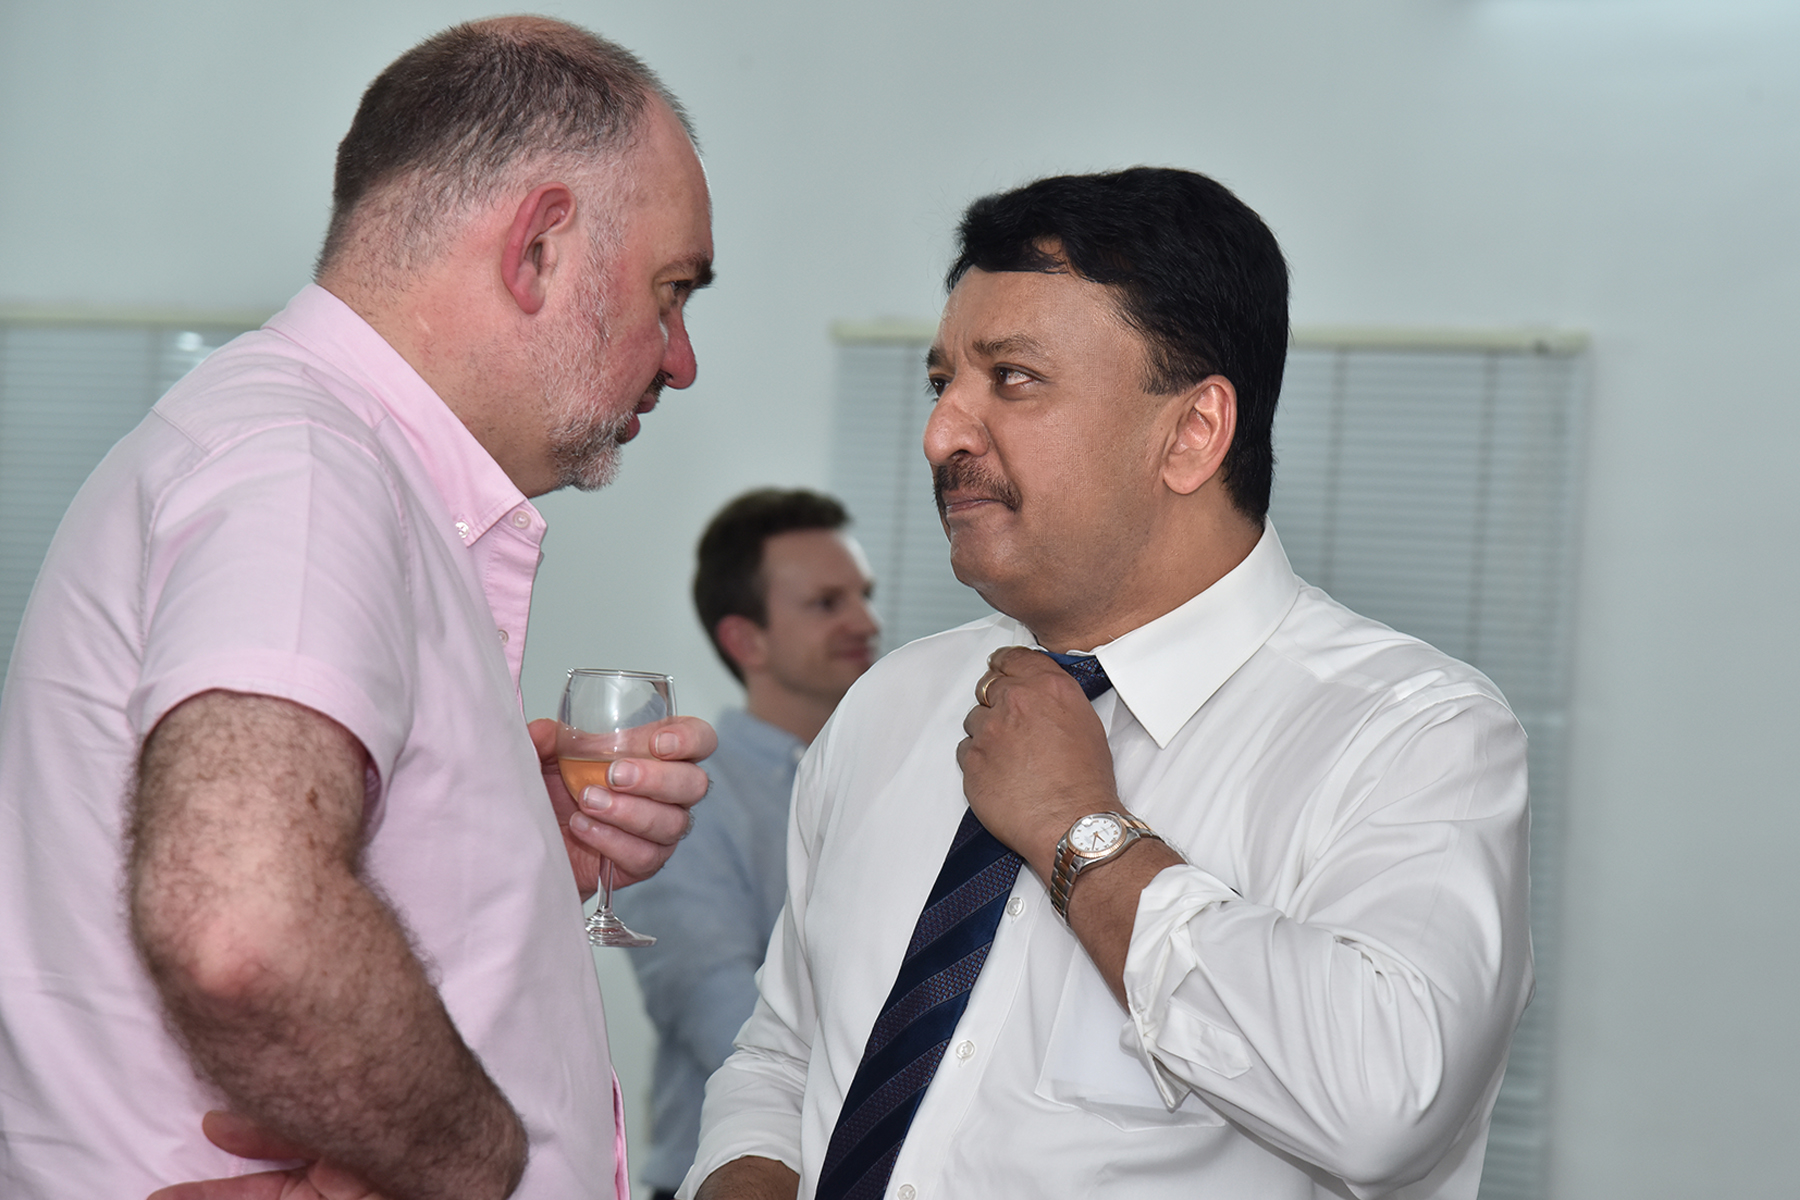 Dr SM Balaji with Dr Andrew Edwards